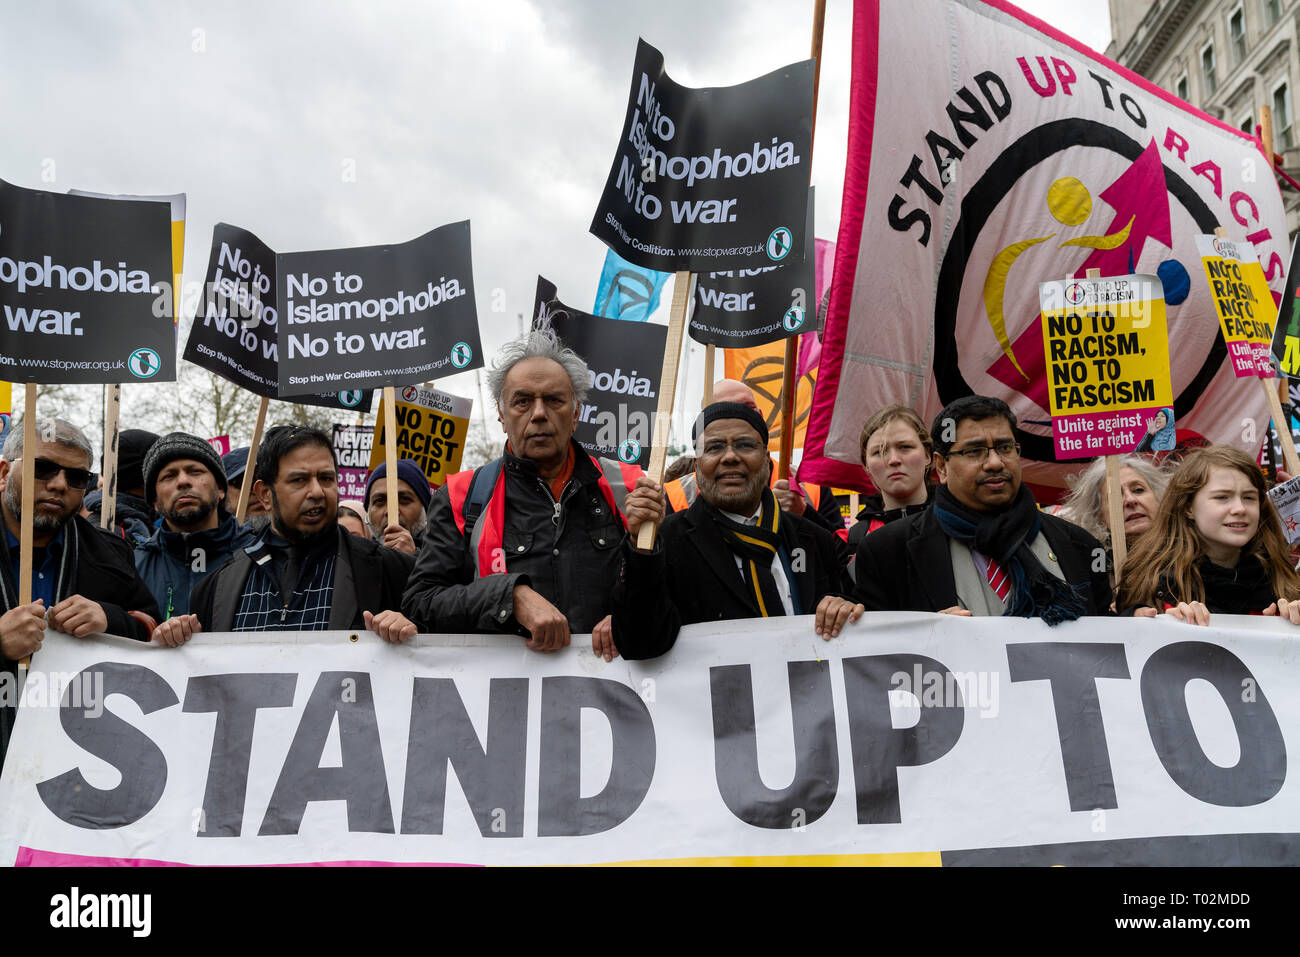 London, UK. 16th Feb, 2019. People come together to protest against far-right groups in UK and Europe. Muslim community with banners 'No To Islamophobia No To War'. Credit: AndKa/Alamy Live News - Stock Image